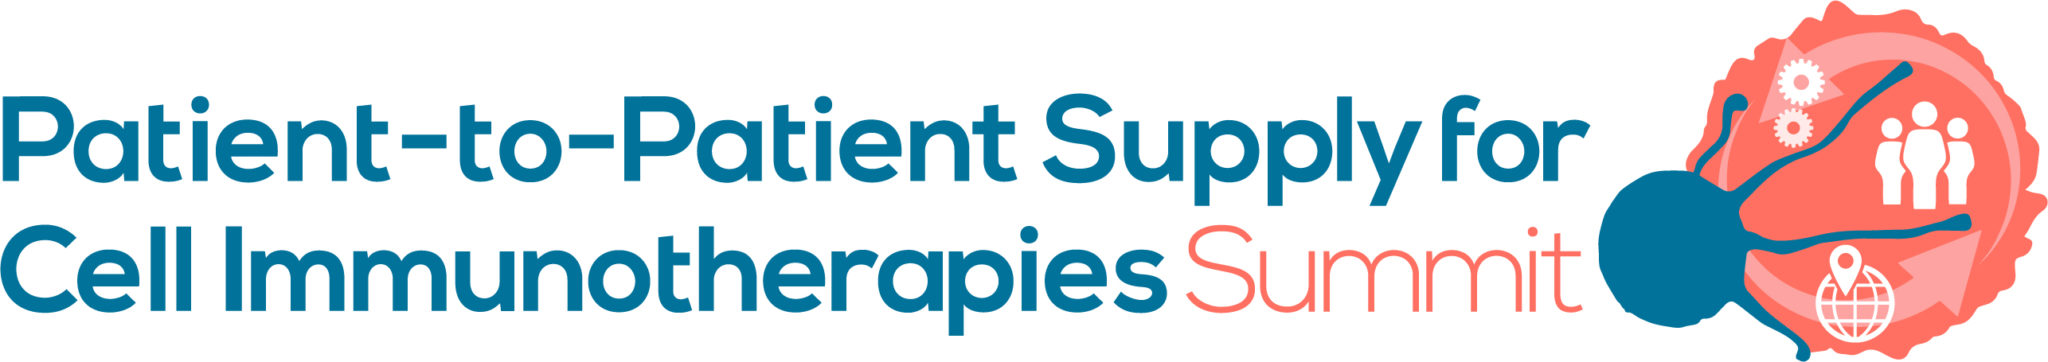 17610 - Patient-to-Patient Supply for Cell Immunotherapies Summit logo